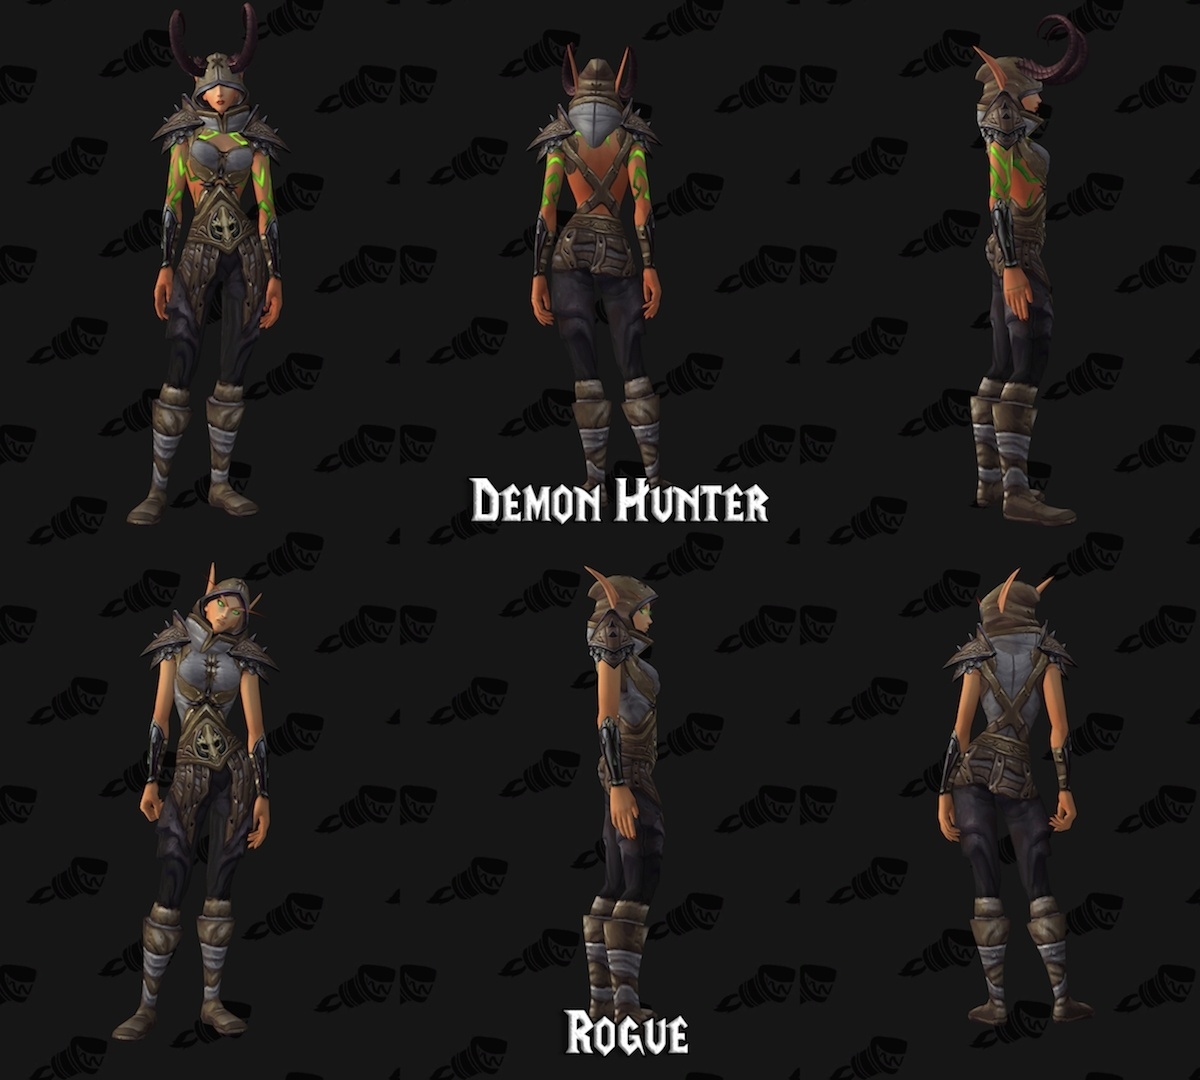 Demon Hunter Armor Appearances & All Transmog Sets for Demon Hunters - Guides - Wowhead